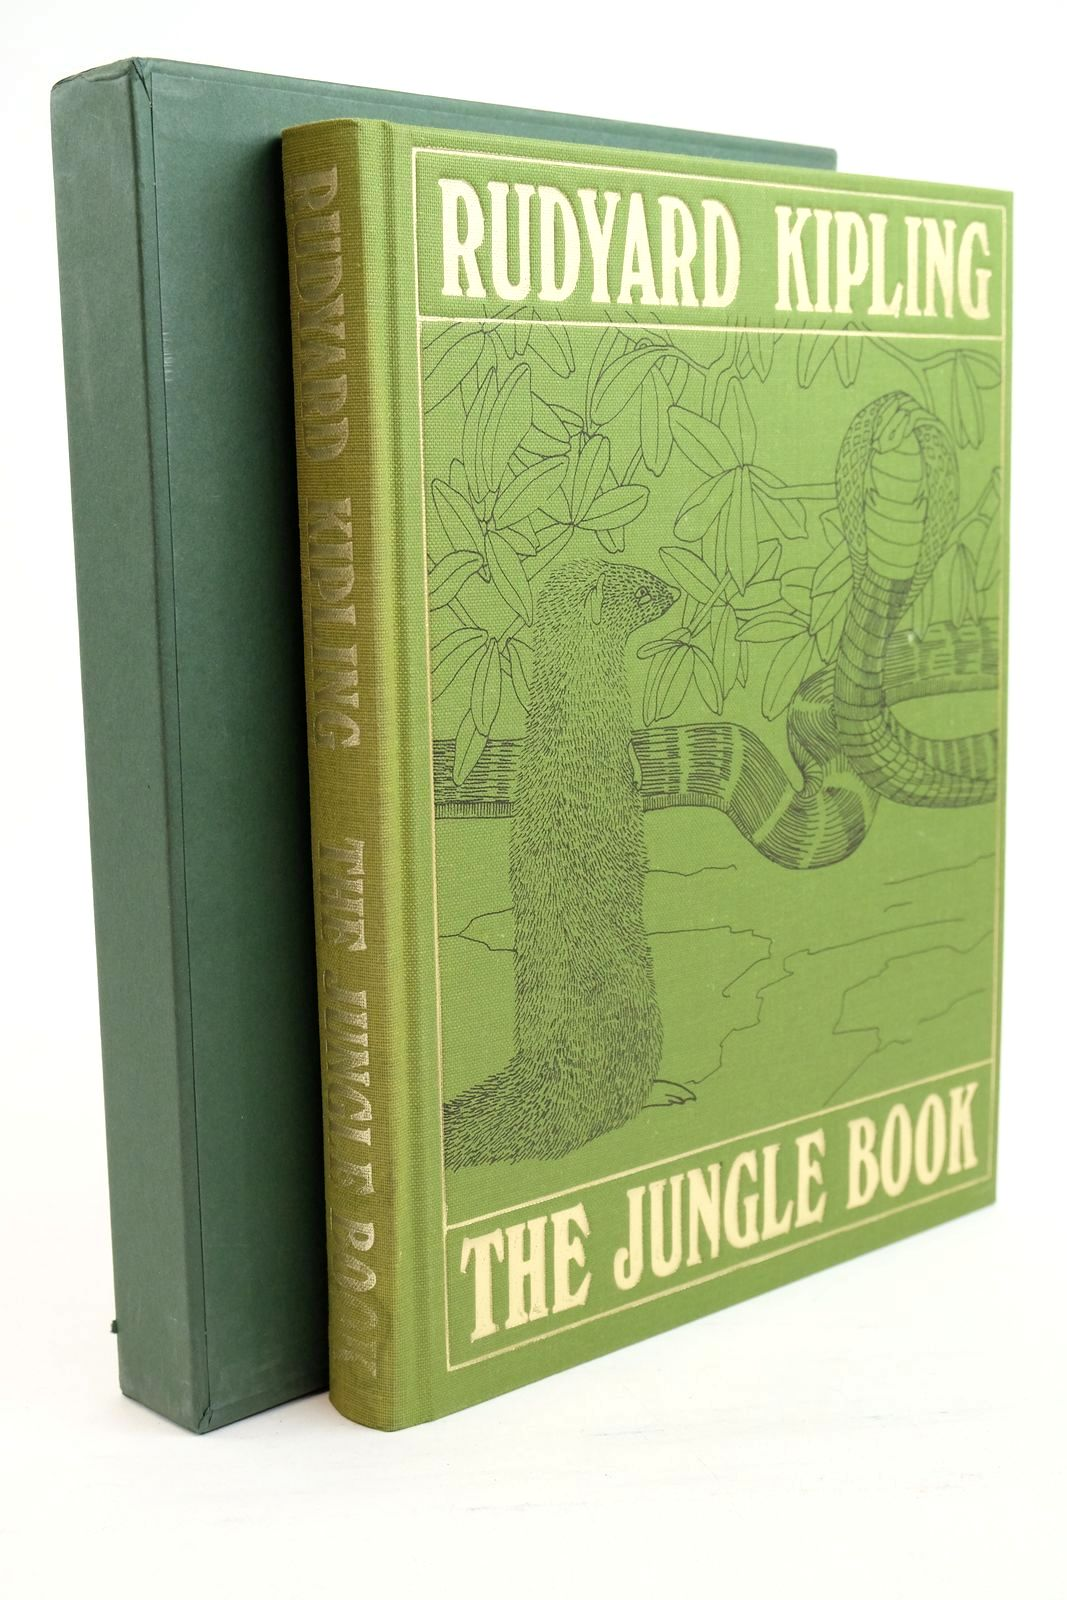 Photo of THE JUNGLE BOOK written by Kipling, Rudyard illustrated by Detmold, Maurice Detmold, Edward J. published by Folio Society (STOCK CODE: 1320915)  for sale by Stella & Rose's Books